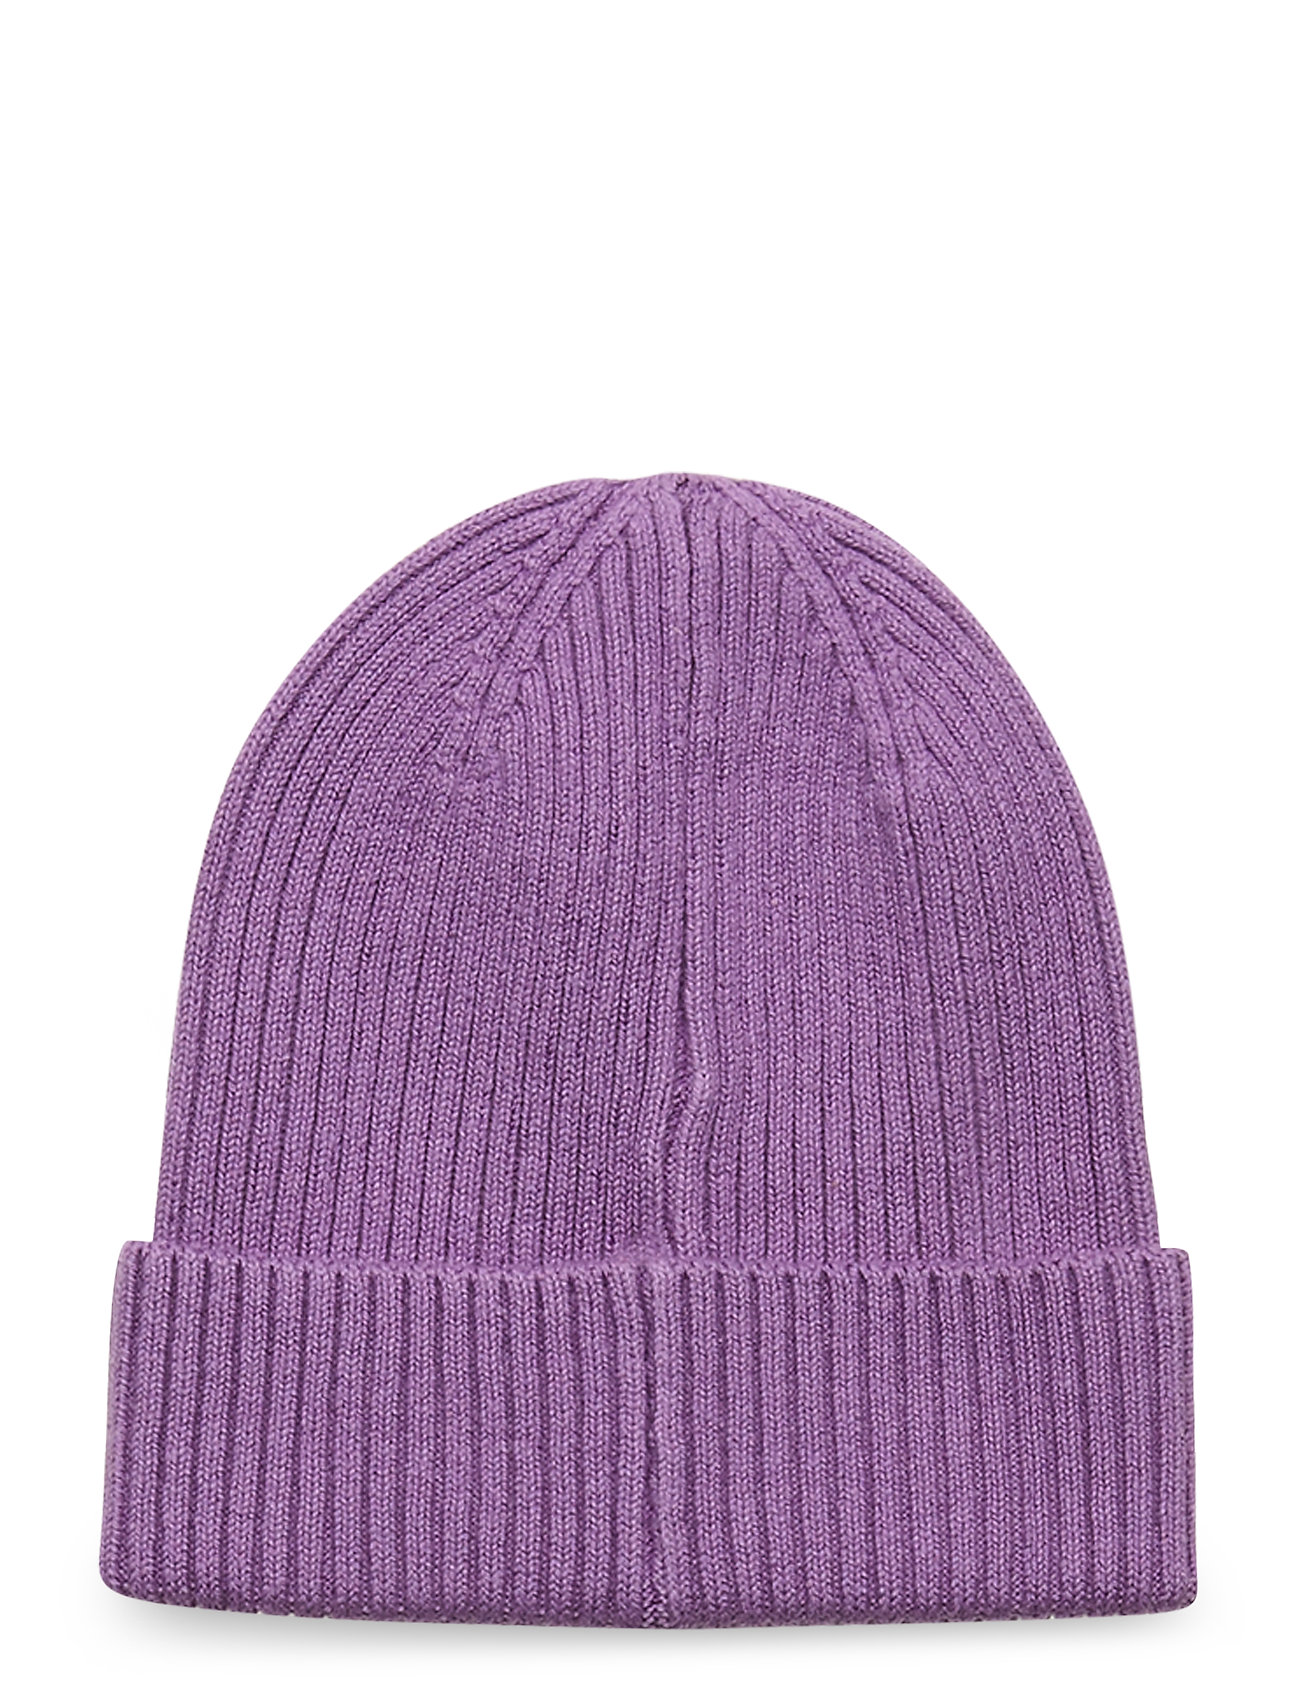 Image of Cap Rib Beanie Sustainable Accessories Headwear Hats Lilla Lindex (3442419641)